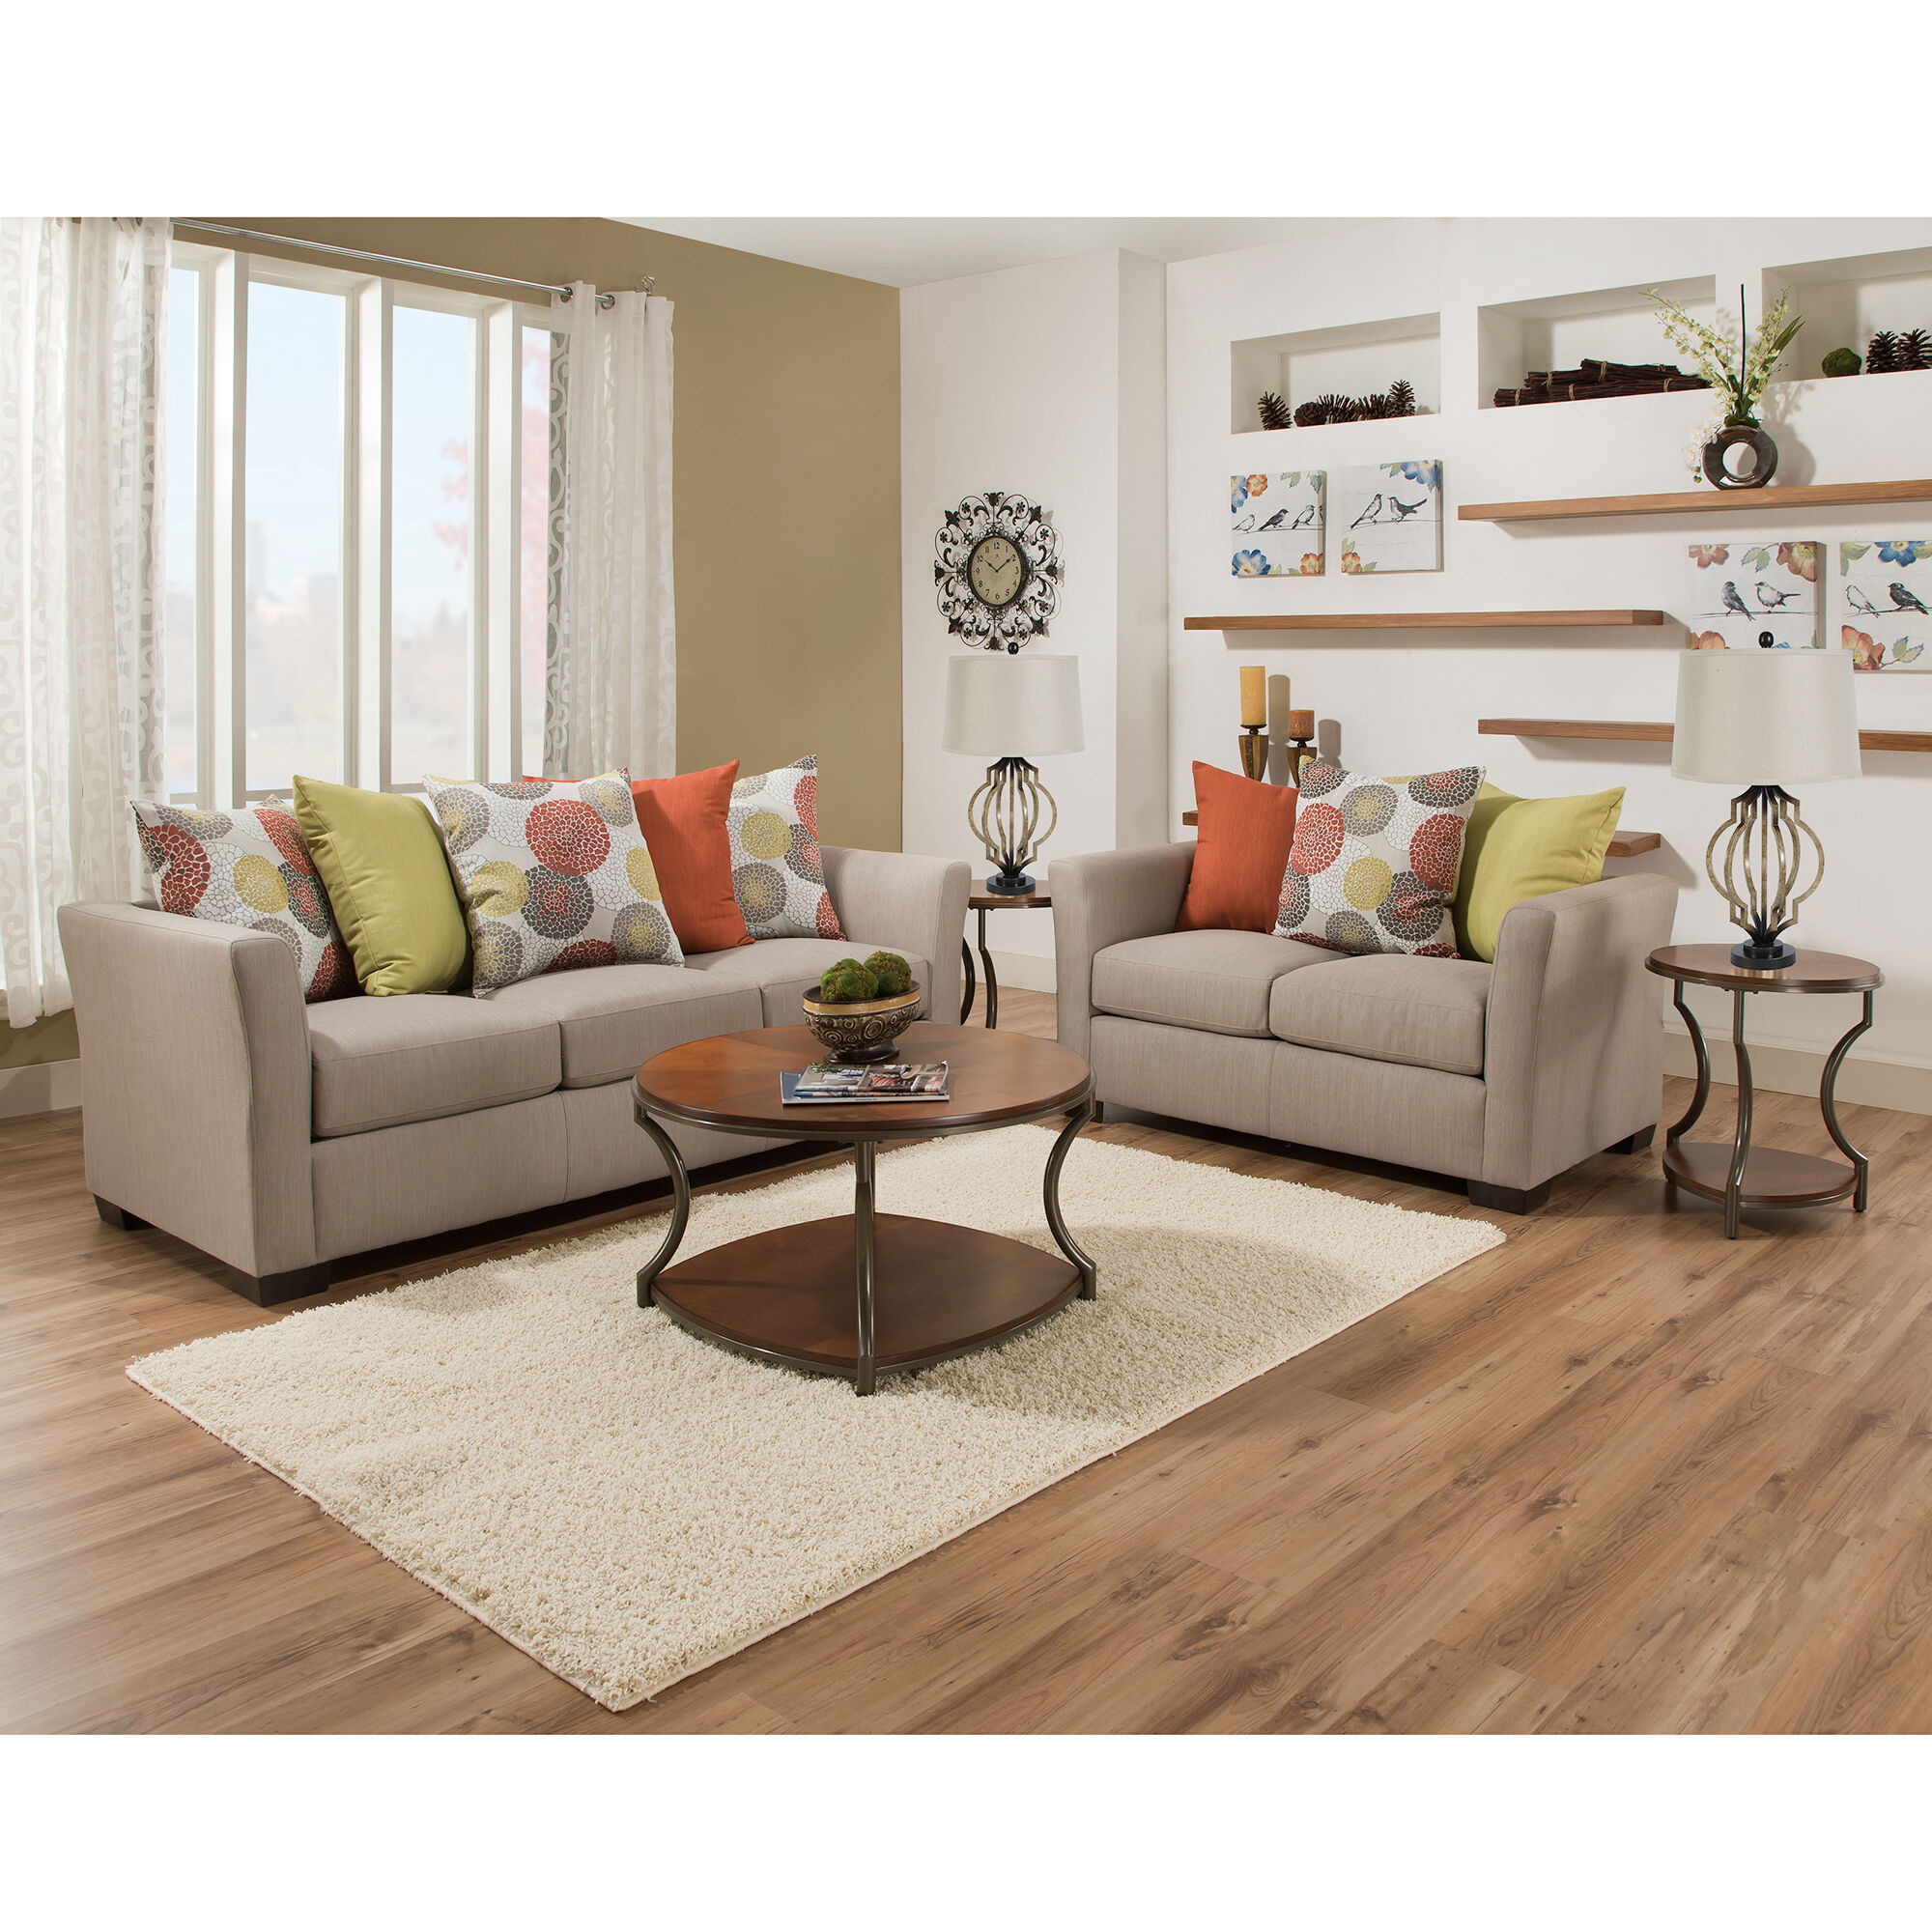 Elegant 2 Piece Ember Living Room Collection